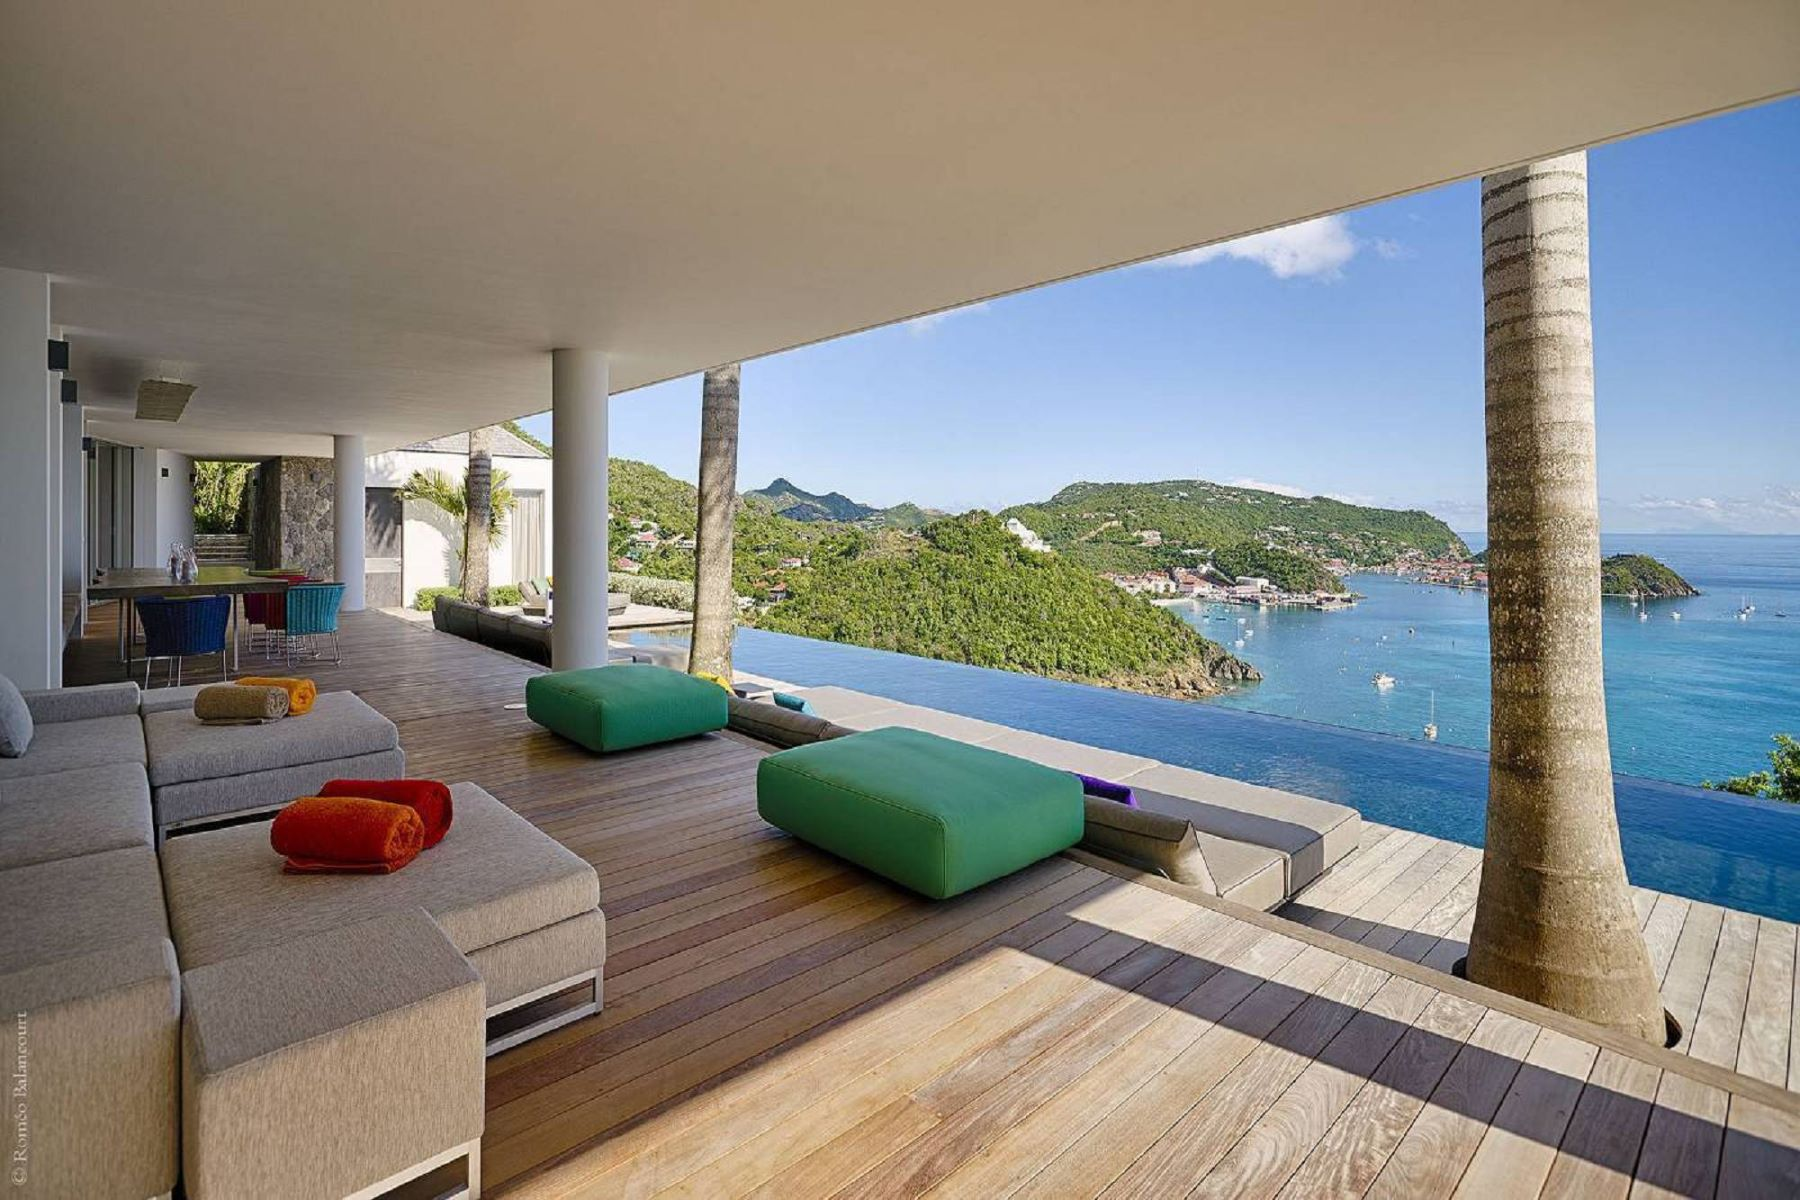 Single Family Homes for Sale at Villa Utopic Corossol Other St. Barthelemy, Cities In St. Barthelemy 97133 St. Barthelemy